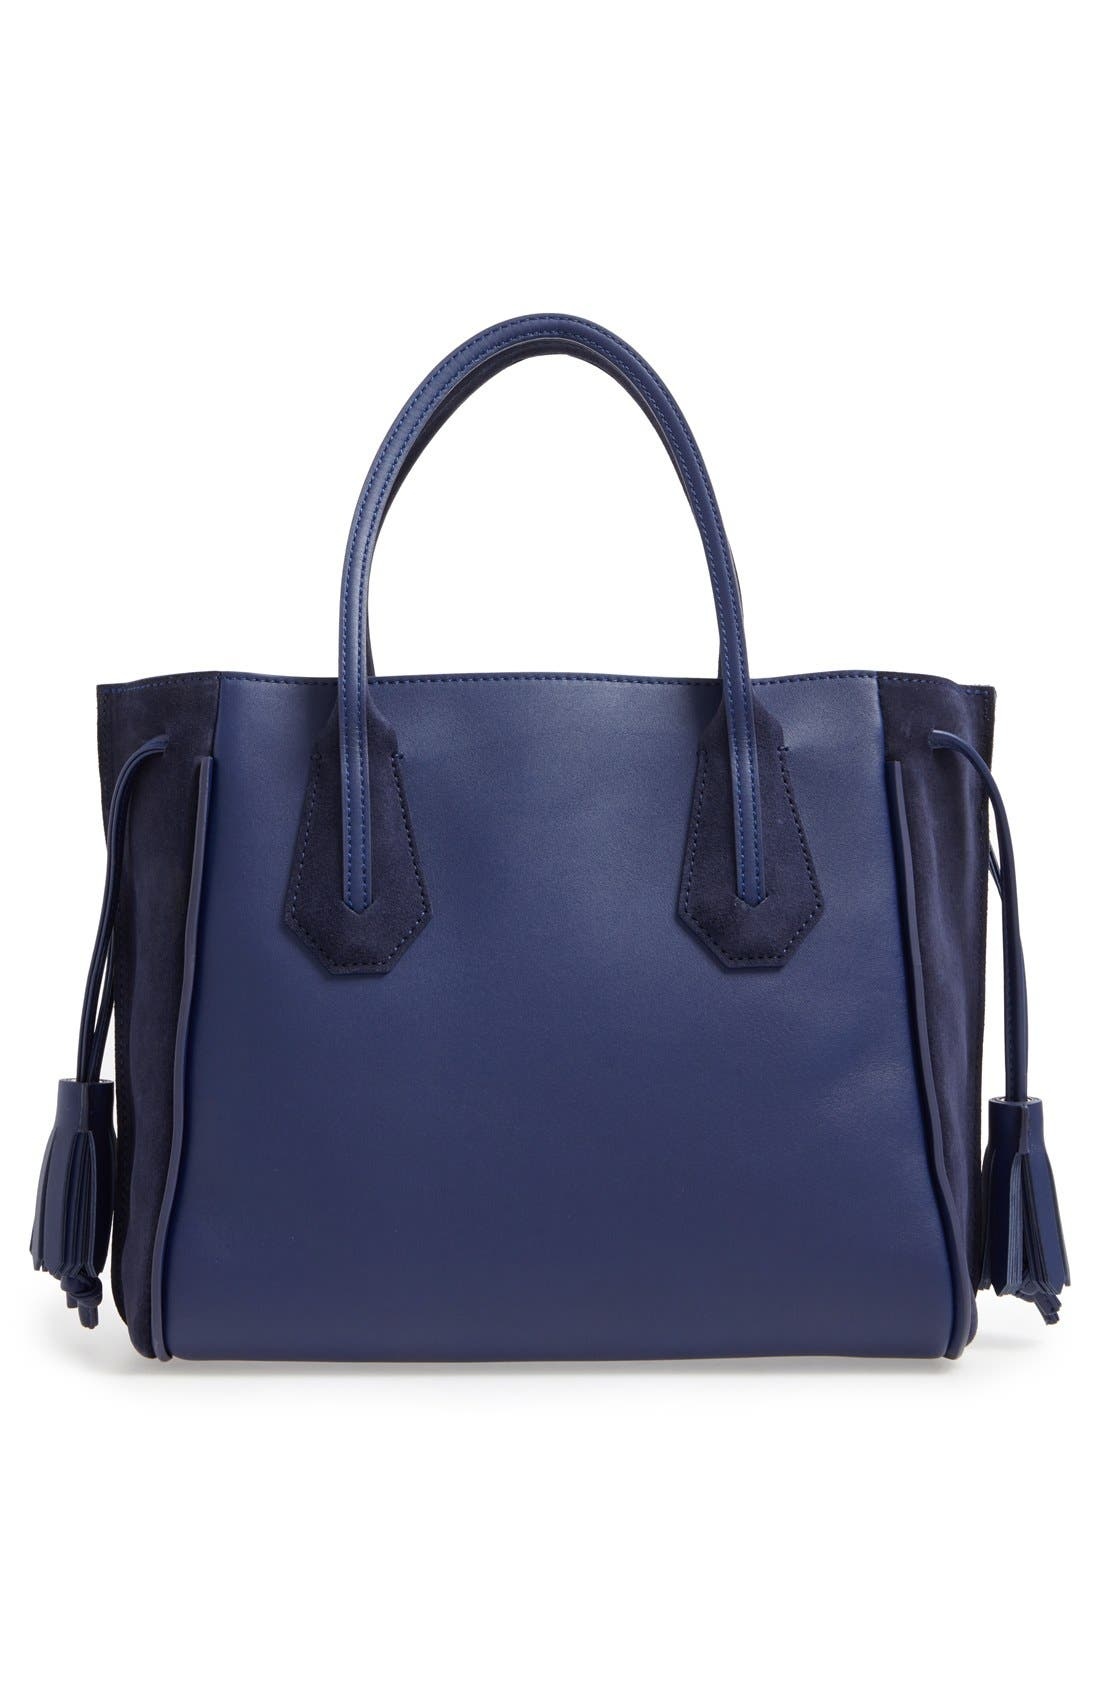 'Small Penelope Fantasie' Leather Tote,                             Alternate thumbnail 9, color,                             400